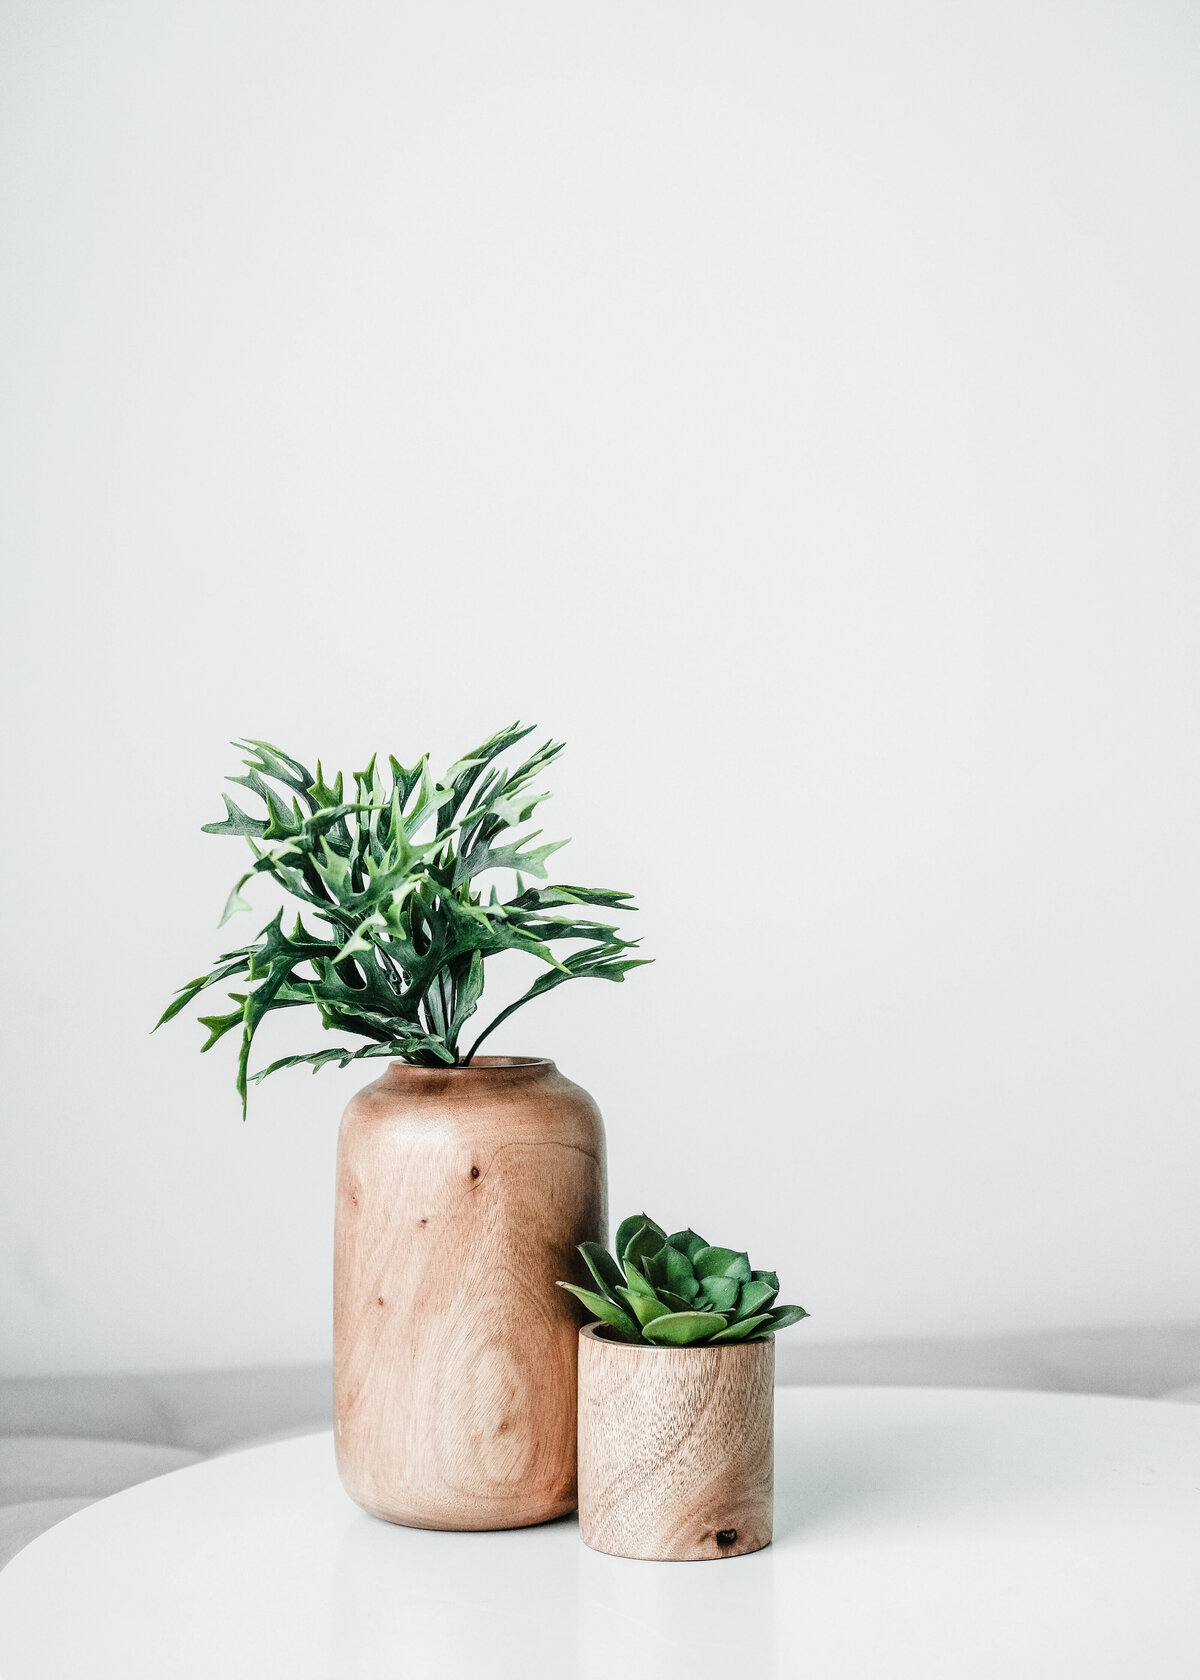 Two wooden plant pots hold succulents against a white wall. Scandi interior decor details.